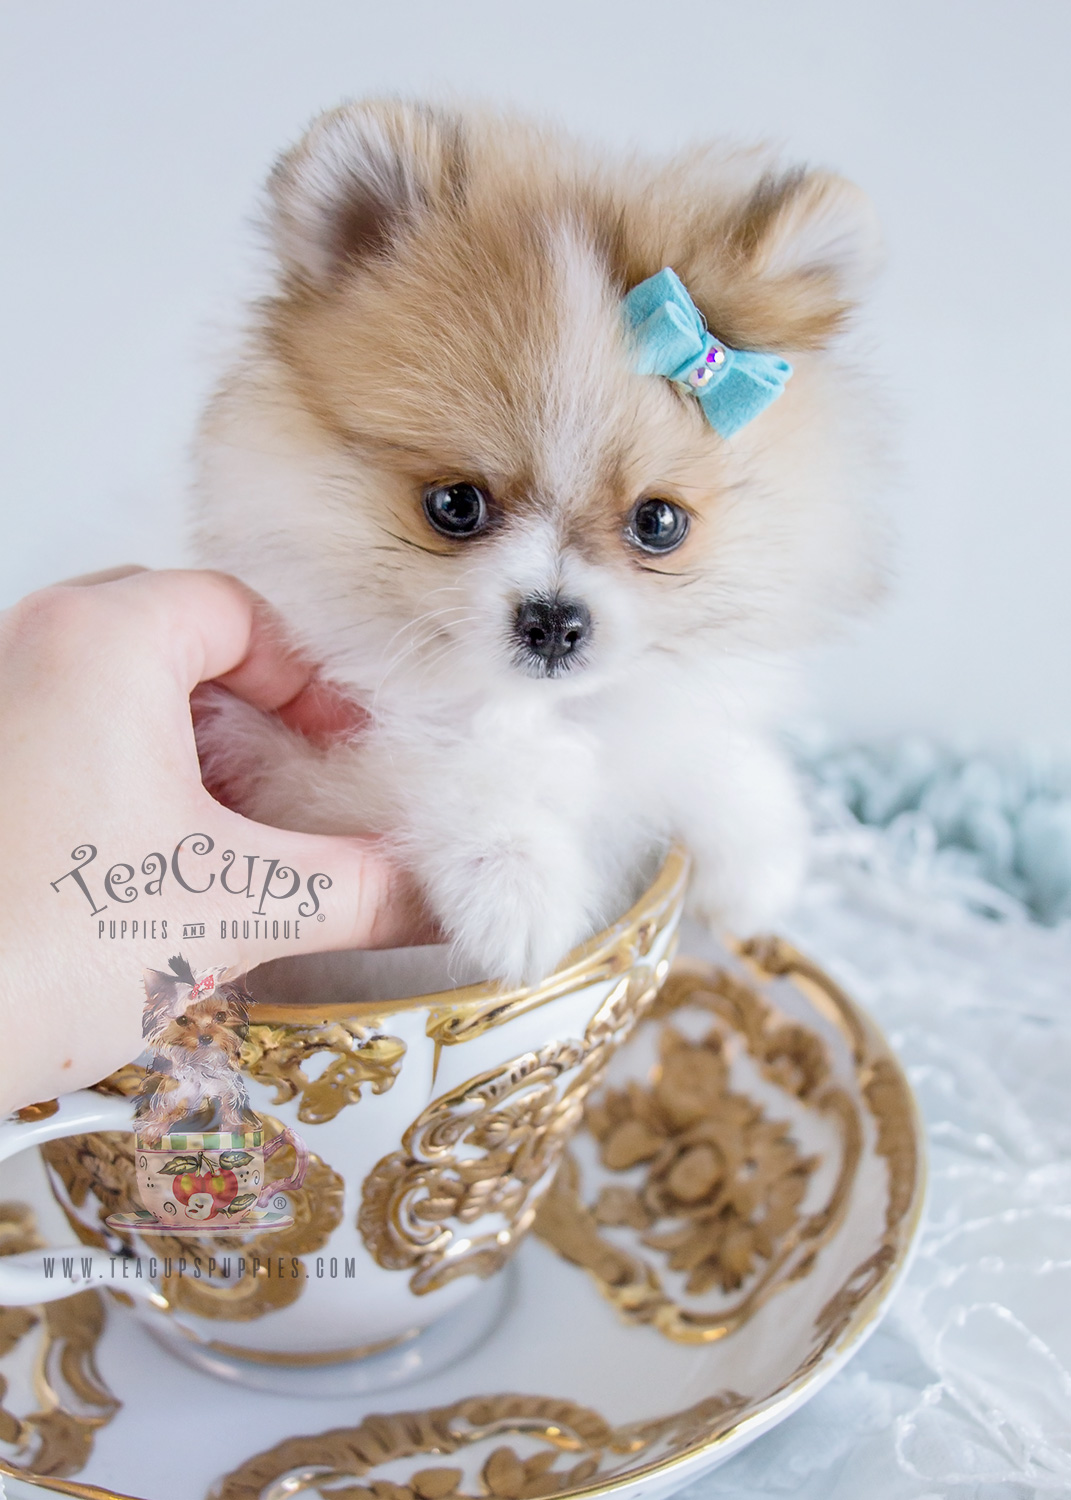 darling teacup pomeranian puppies for sale